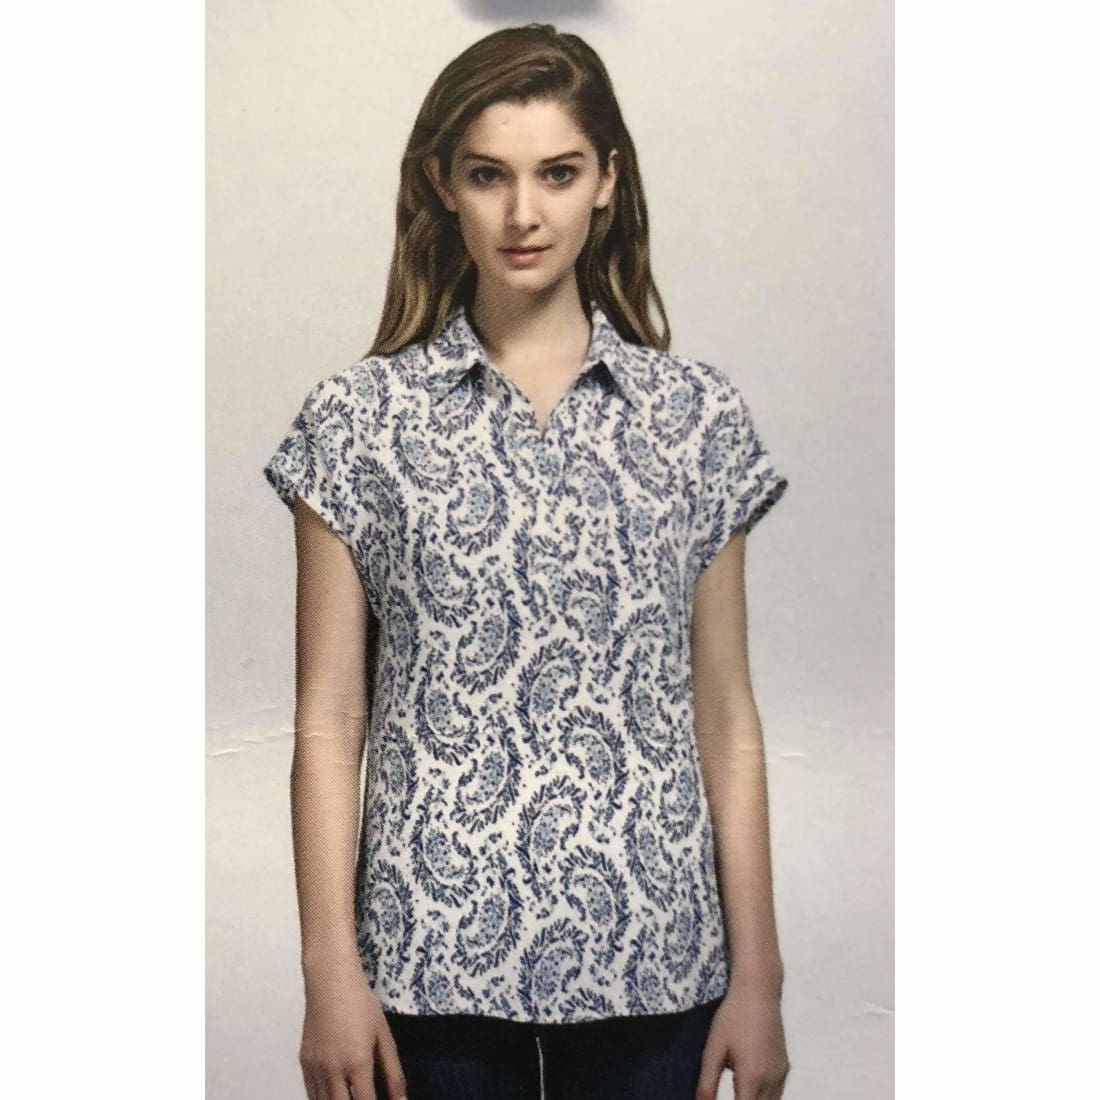 Pleione Womens Short Sleeve V-Neck Blouse Blue Paisley Tops & Blouses